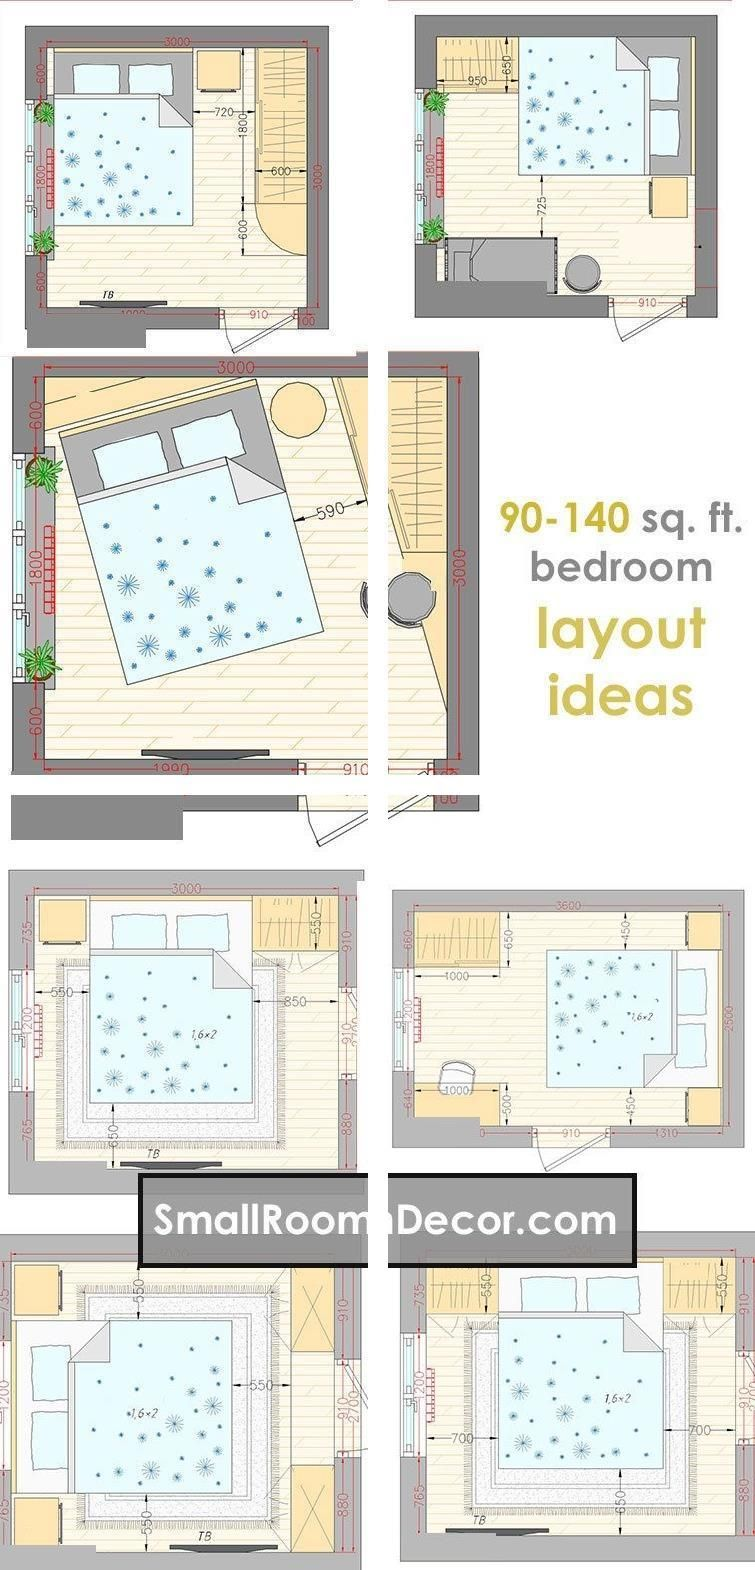 House Furniture Furniture Design Cheap Bedroom Fitments In